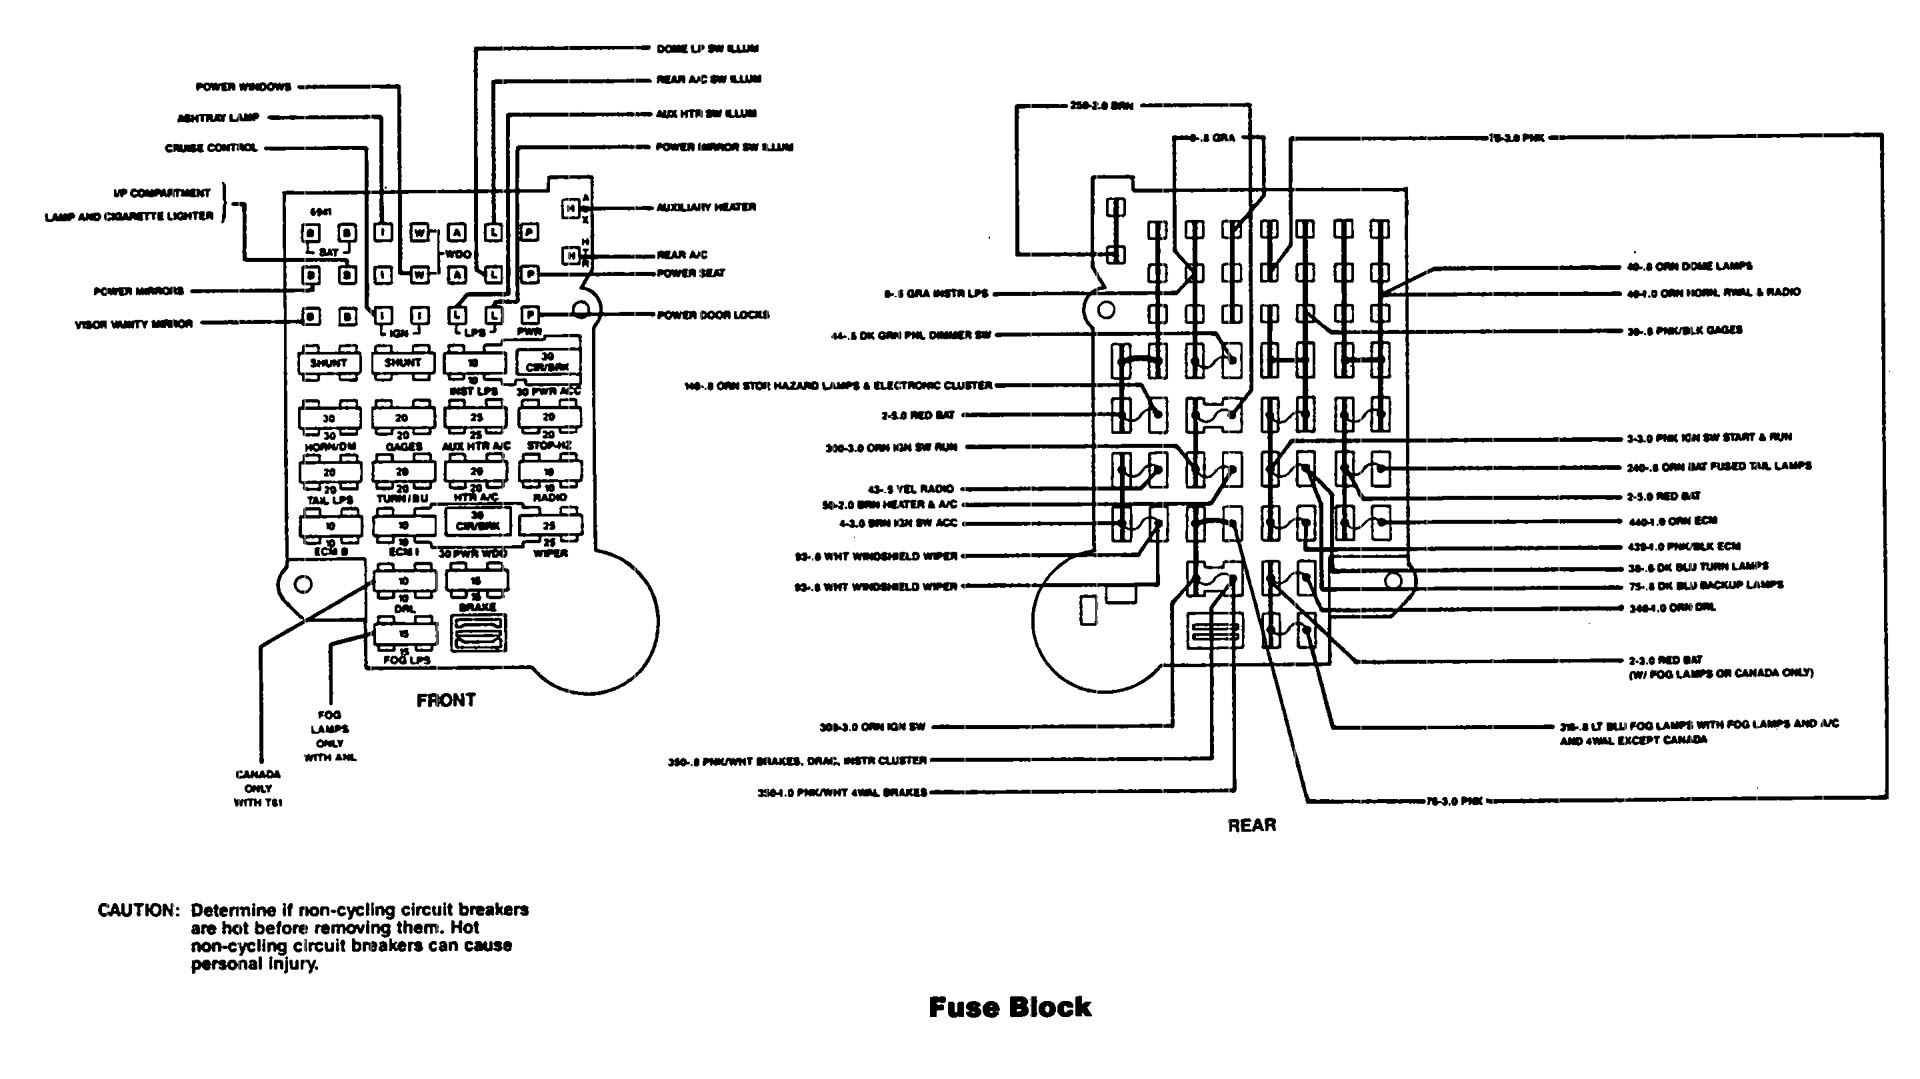 Chevrolet Fuse Box Diagram 1990 - Wiring Diagram